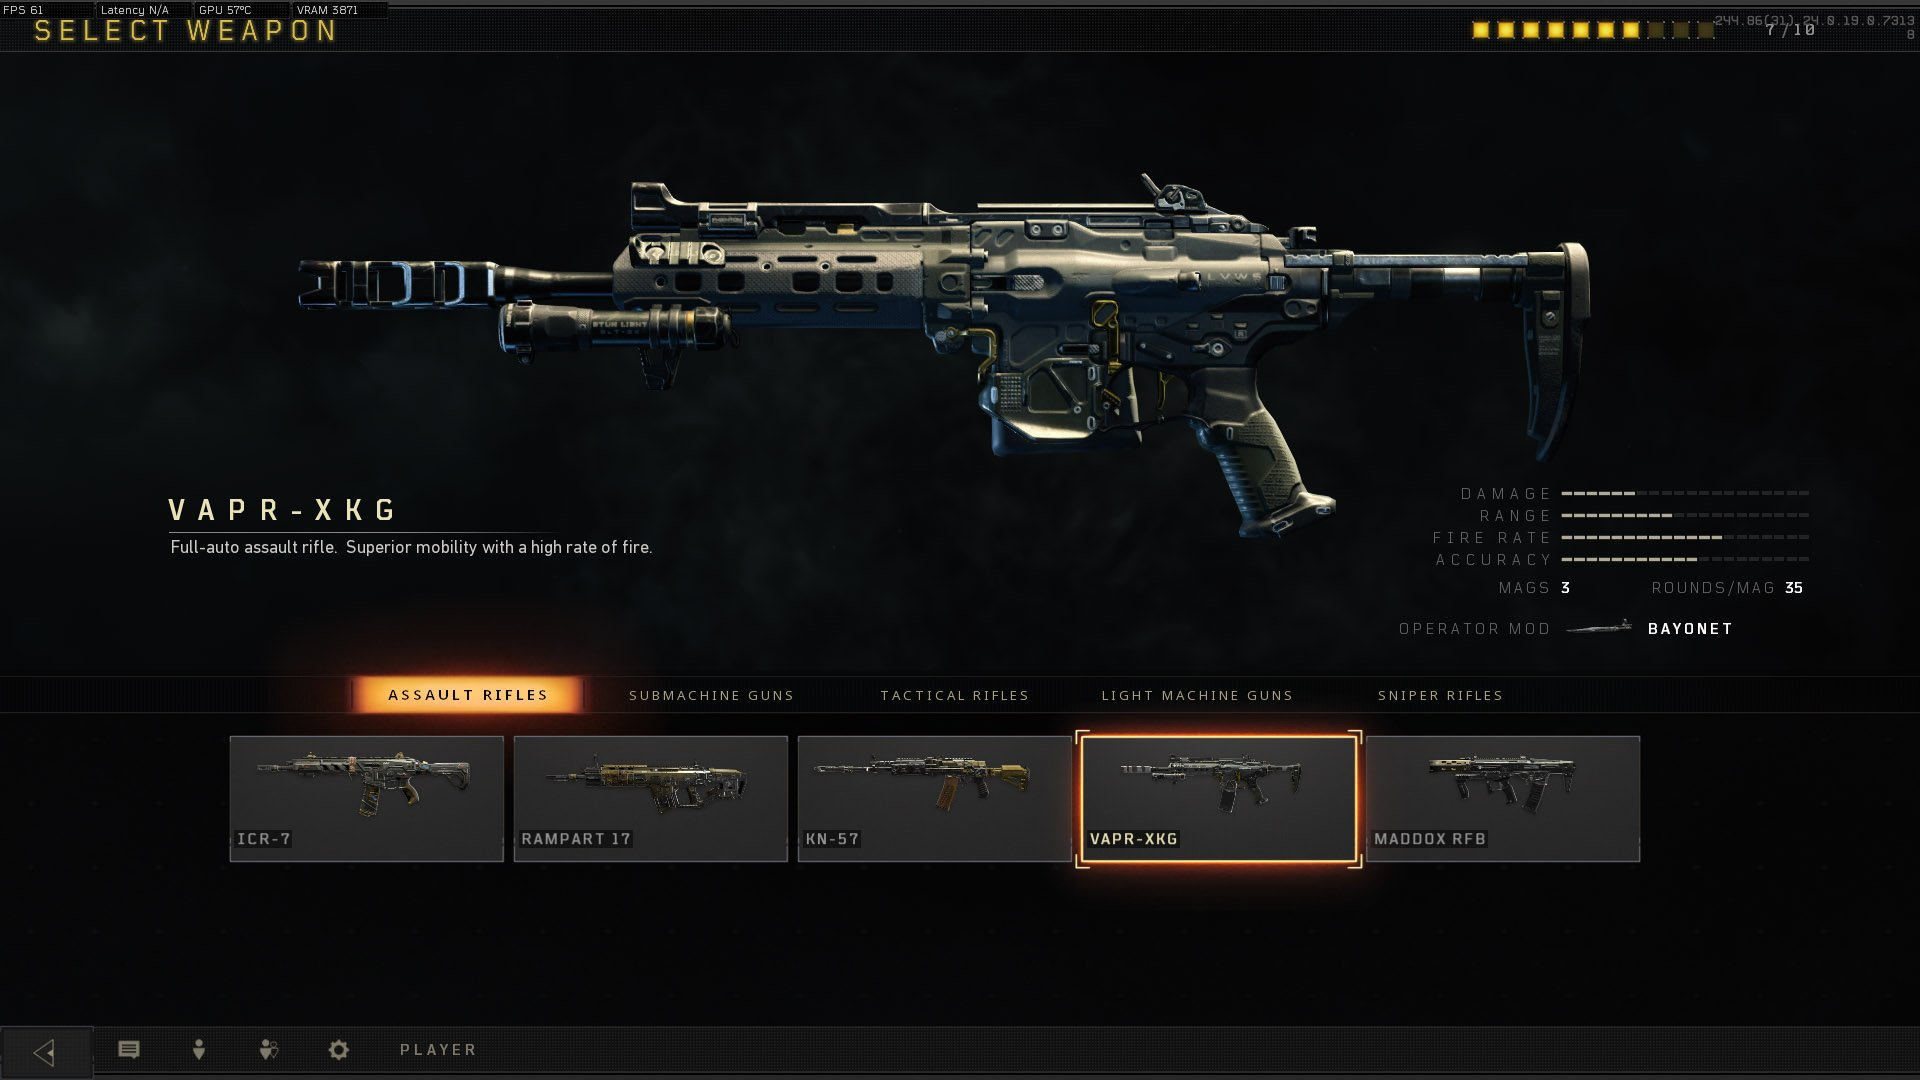 Guns and Weapon List in Call of Duty: Black Ops 4 | Shacknews